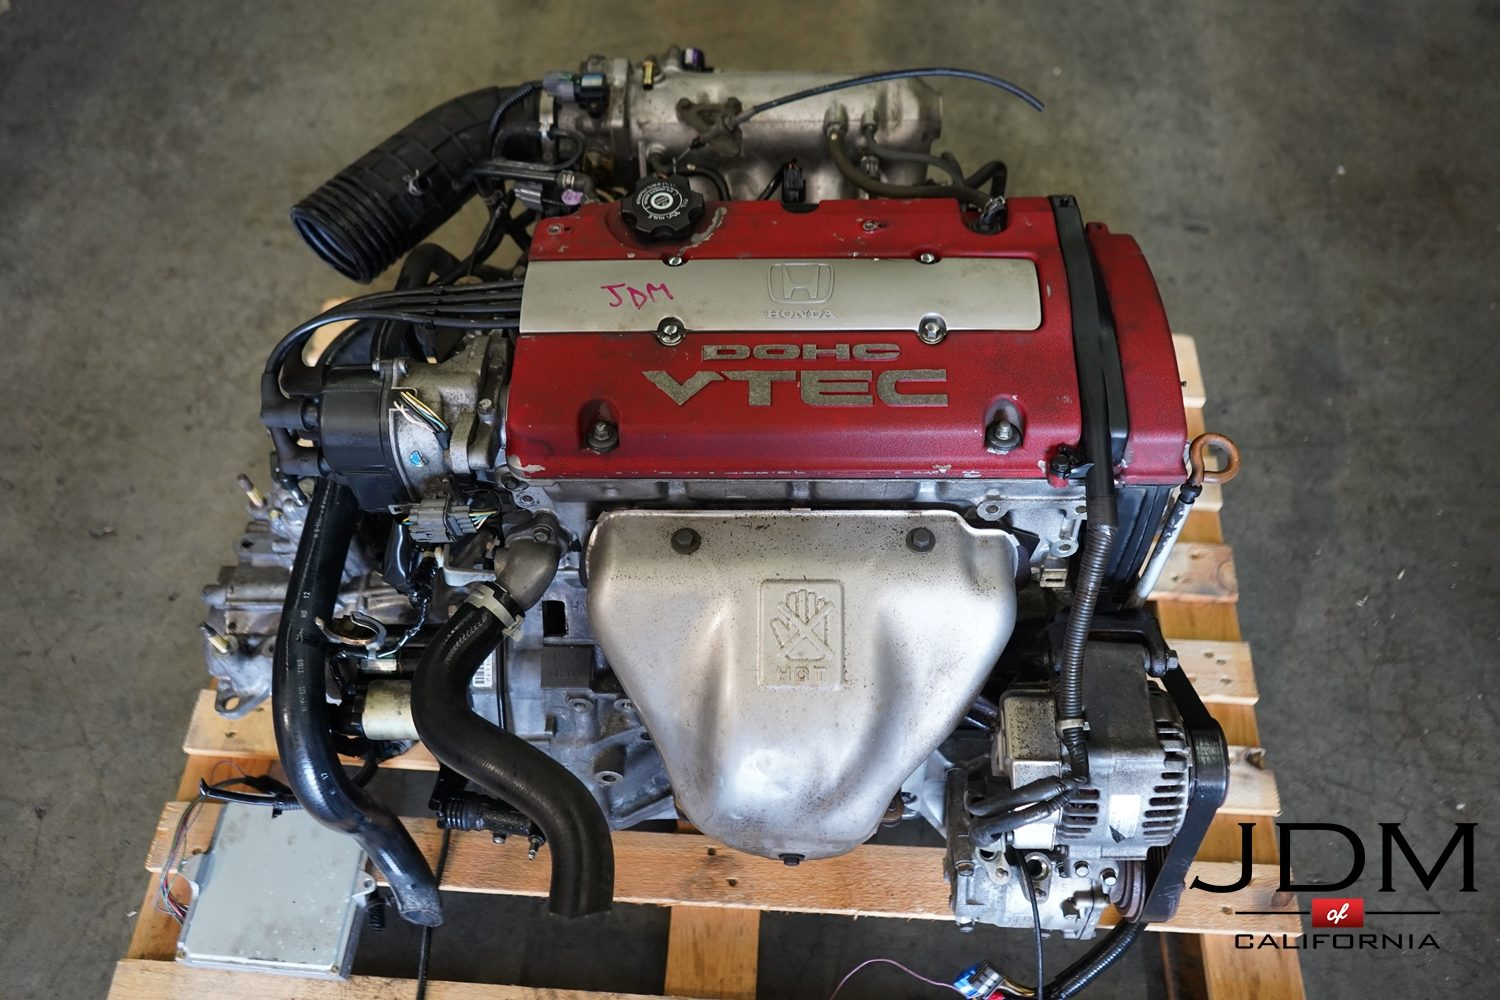 JDM HONDA H22A EURO R COMPLETE ENGINE WITH 5SPD LSD TRANSMISSION on dodge sprinter engine harness, suspension harness, oem engine wire harness, hoist harness, engine harmonic balancer, engine control module, bmw 2 8 engine wire harness,